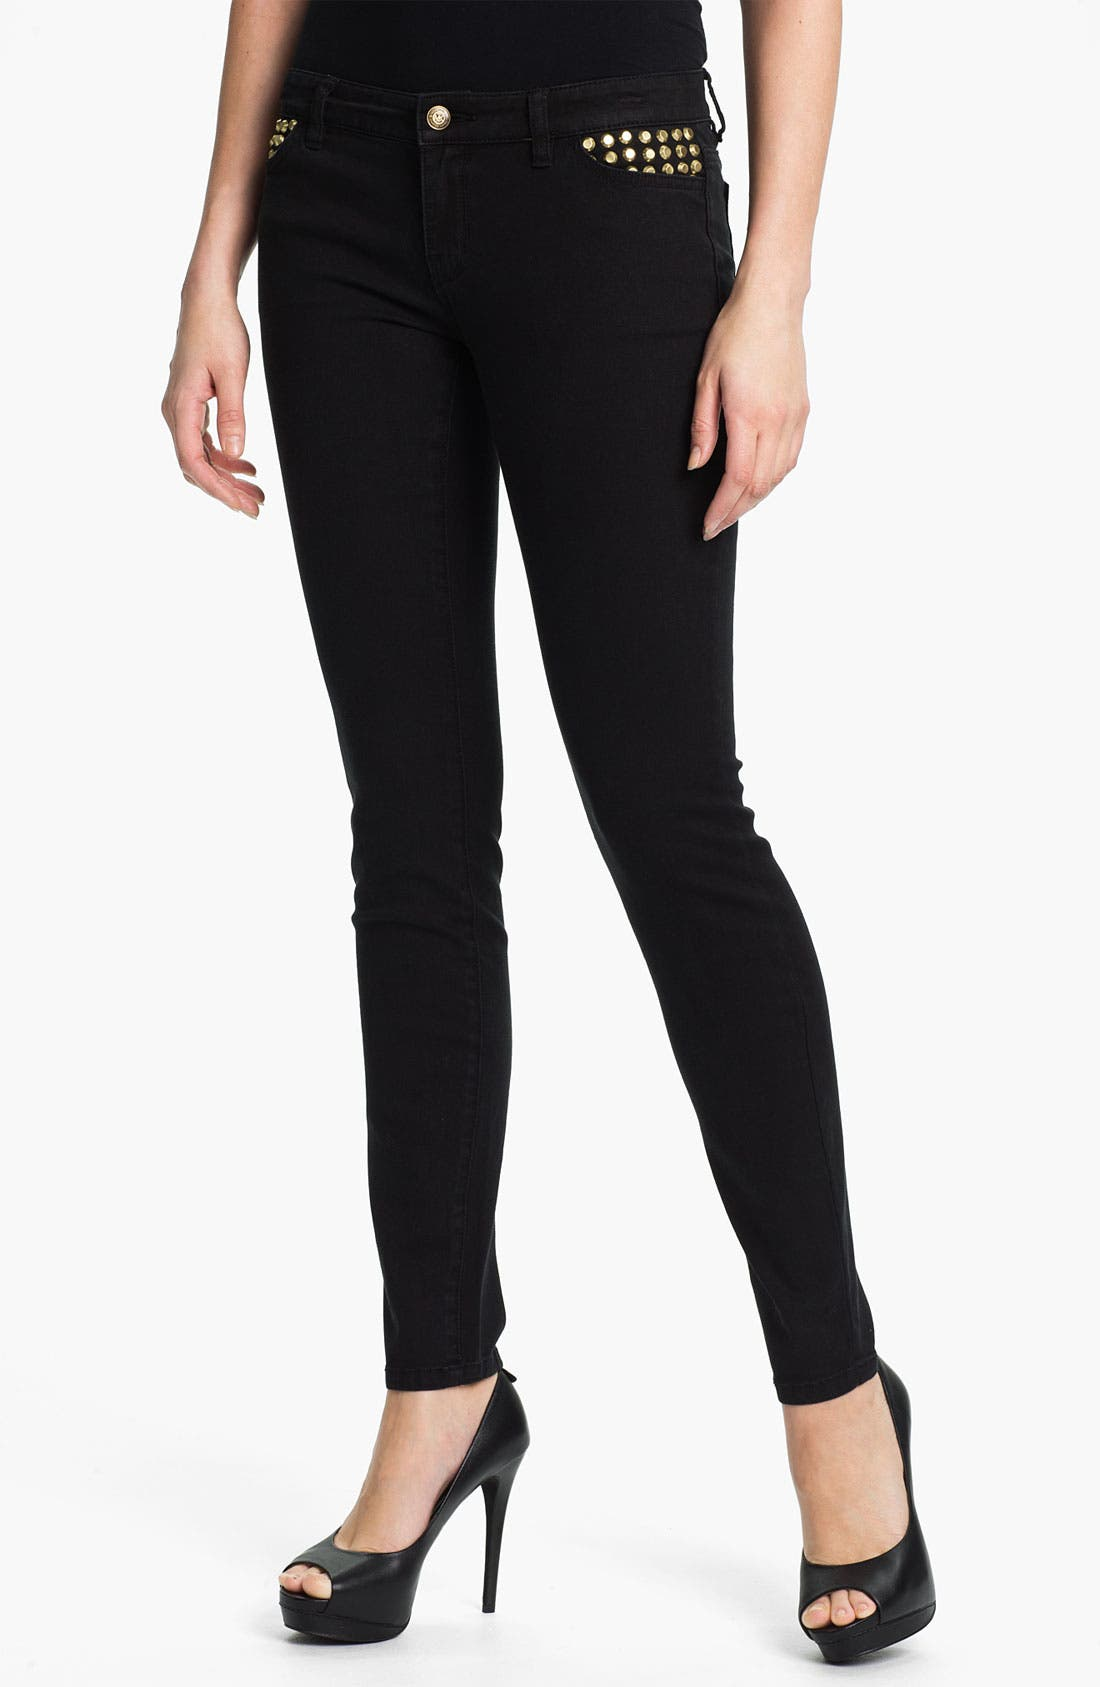 Alternate Image 1 Selected - MICHAEL Michael Kors 'Astor' Studded Denim Leggings